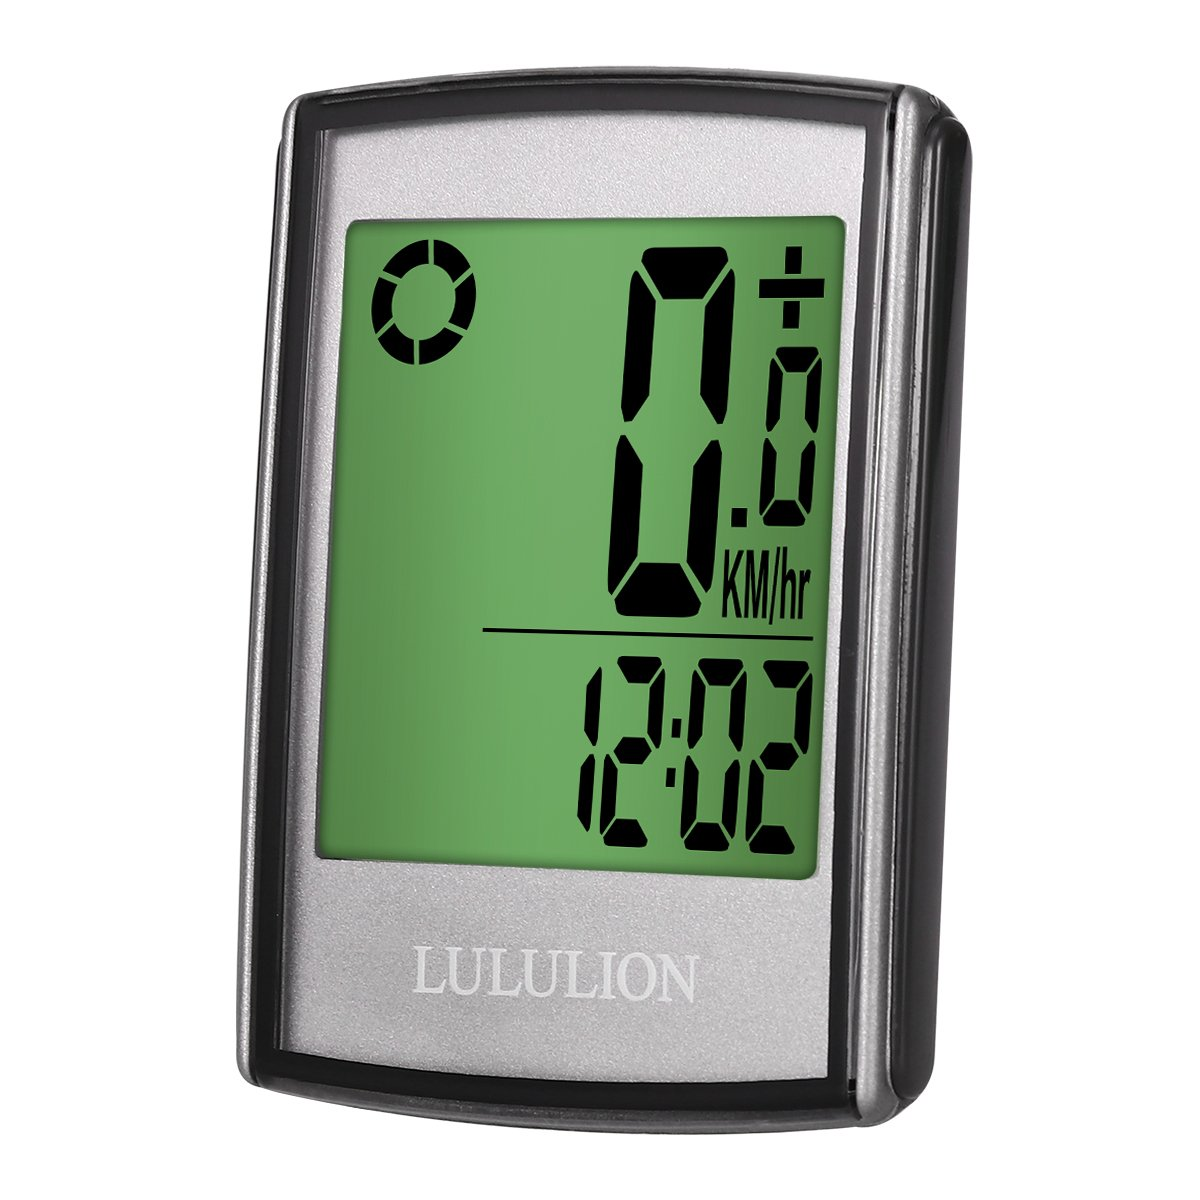 LULULION Bike Computer, Bike Odometer Cycling, Wireless Bicycle Speedometer Multi-Function Water Resistant with Digital LCD Display